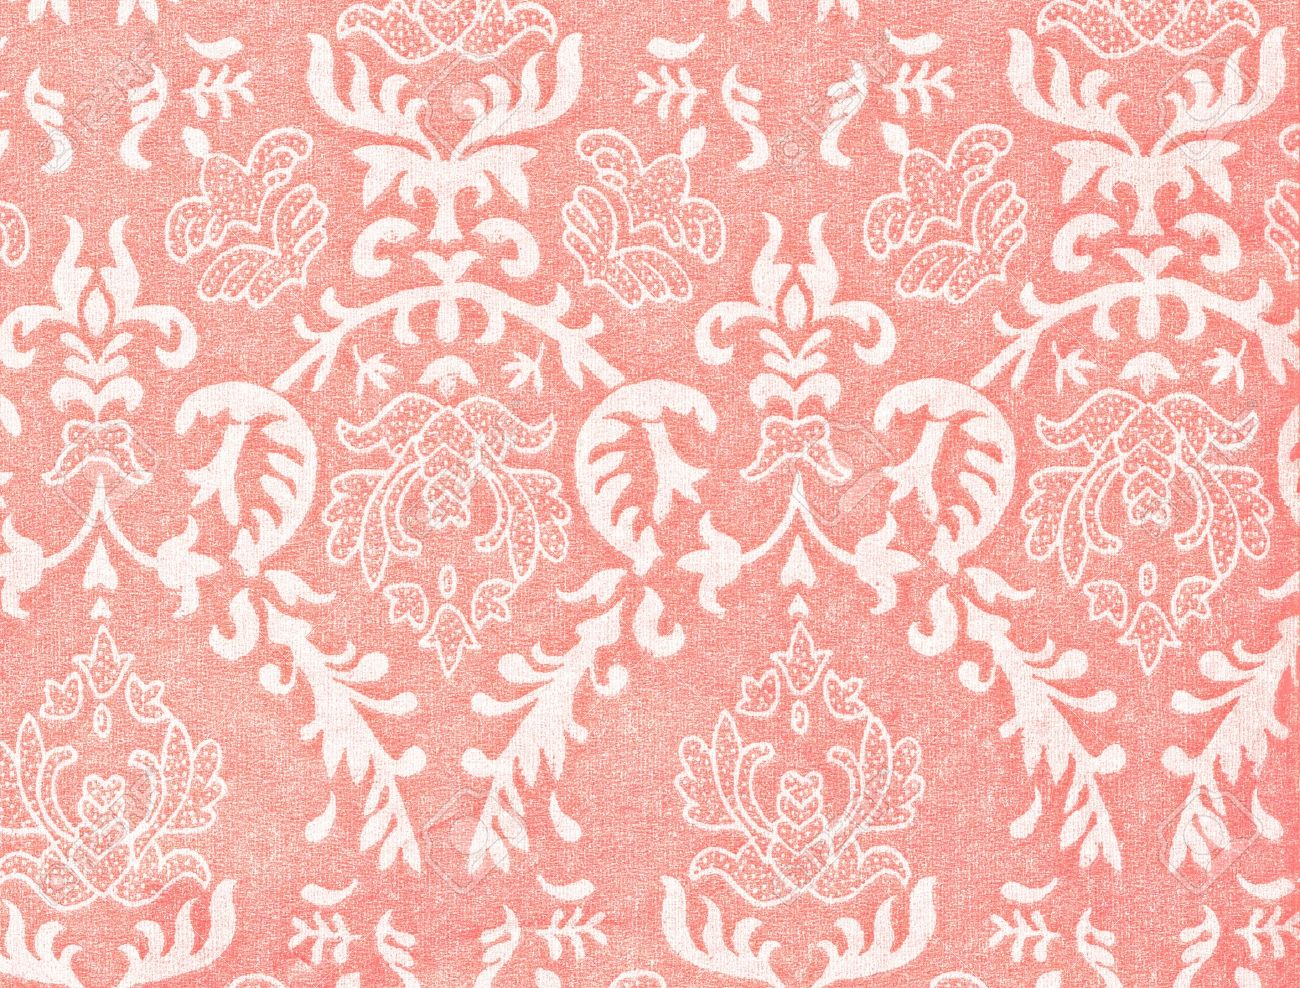 Light Pink Pattern Images Stock Photos amp Vectors